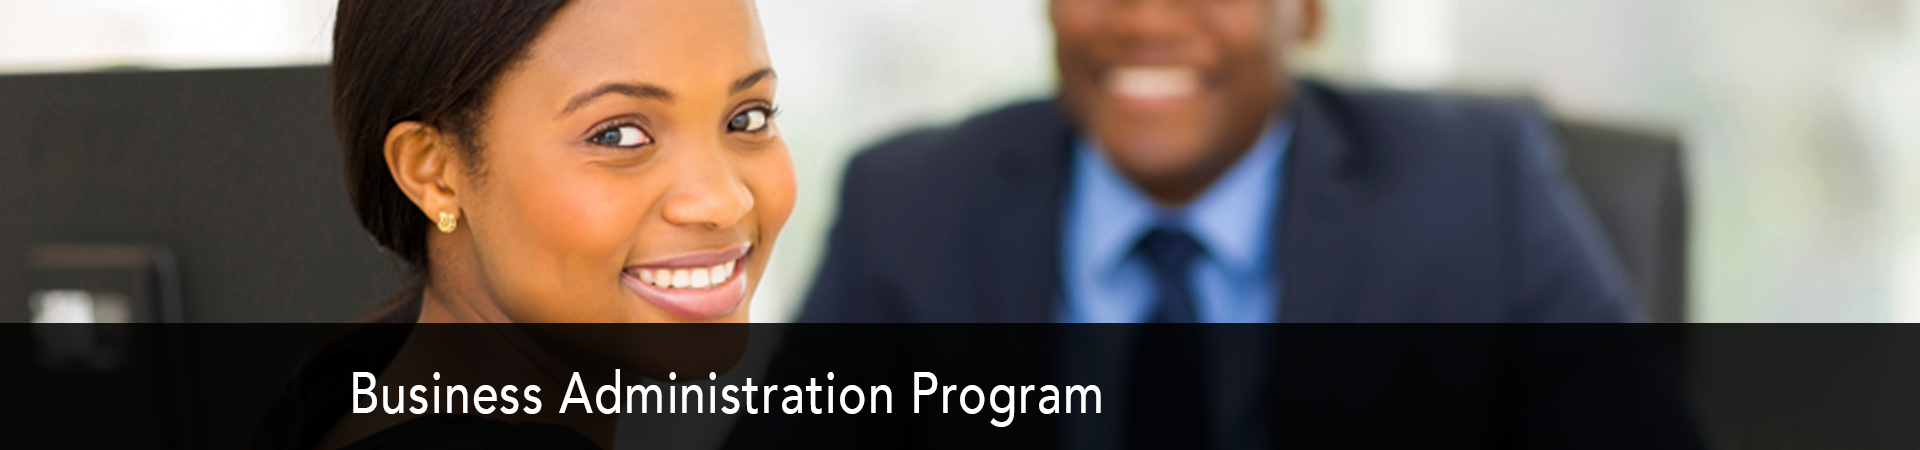 Explore the Business Administration Program at NC